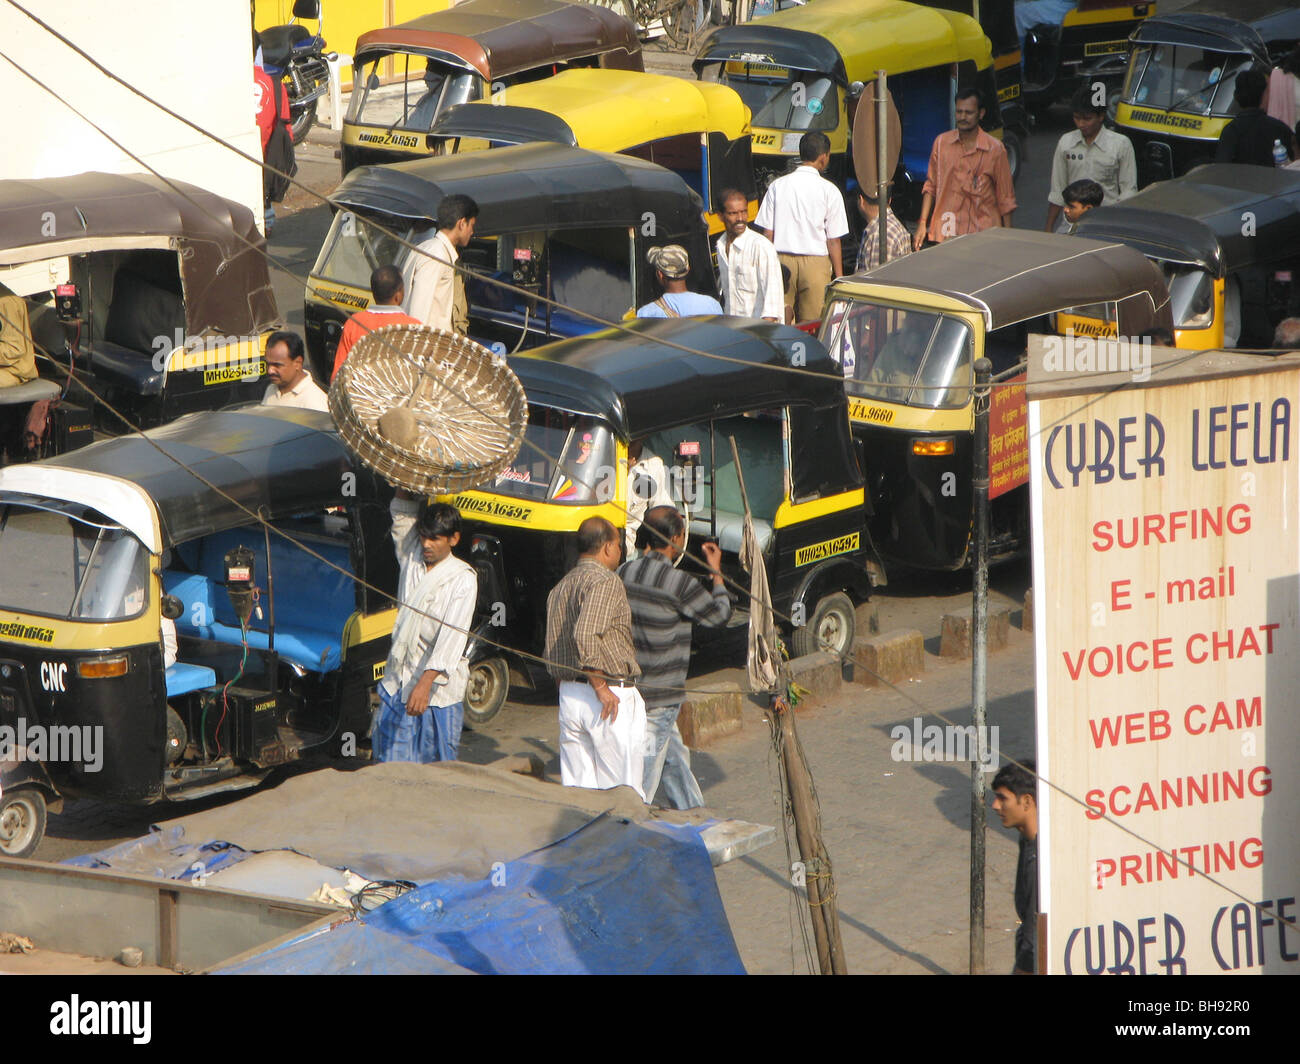 INDIA Highly polluting auto-rickshaws in a street of Mumbai Photo © Julio Etchart - Stock Image